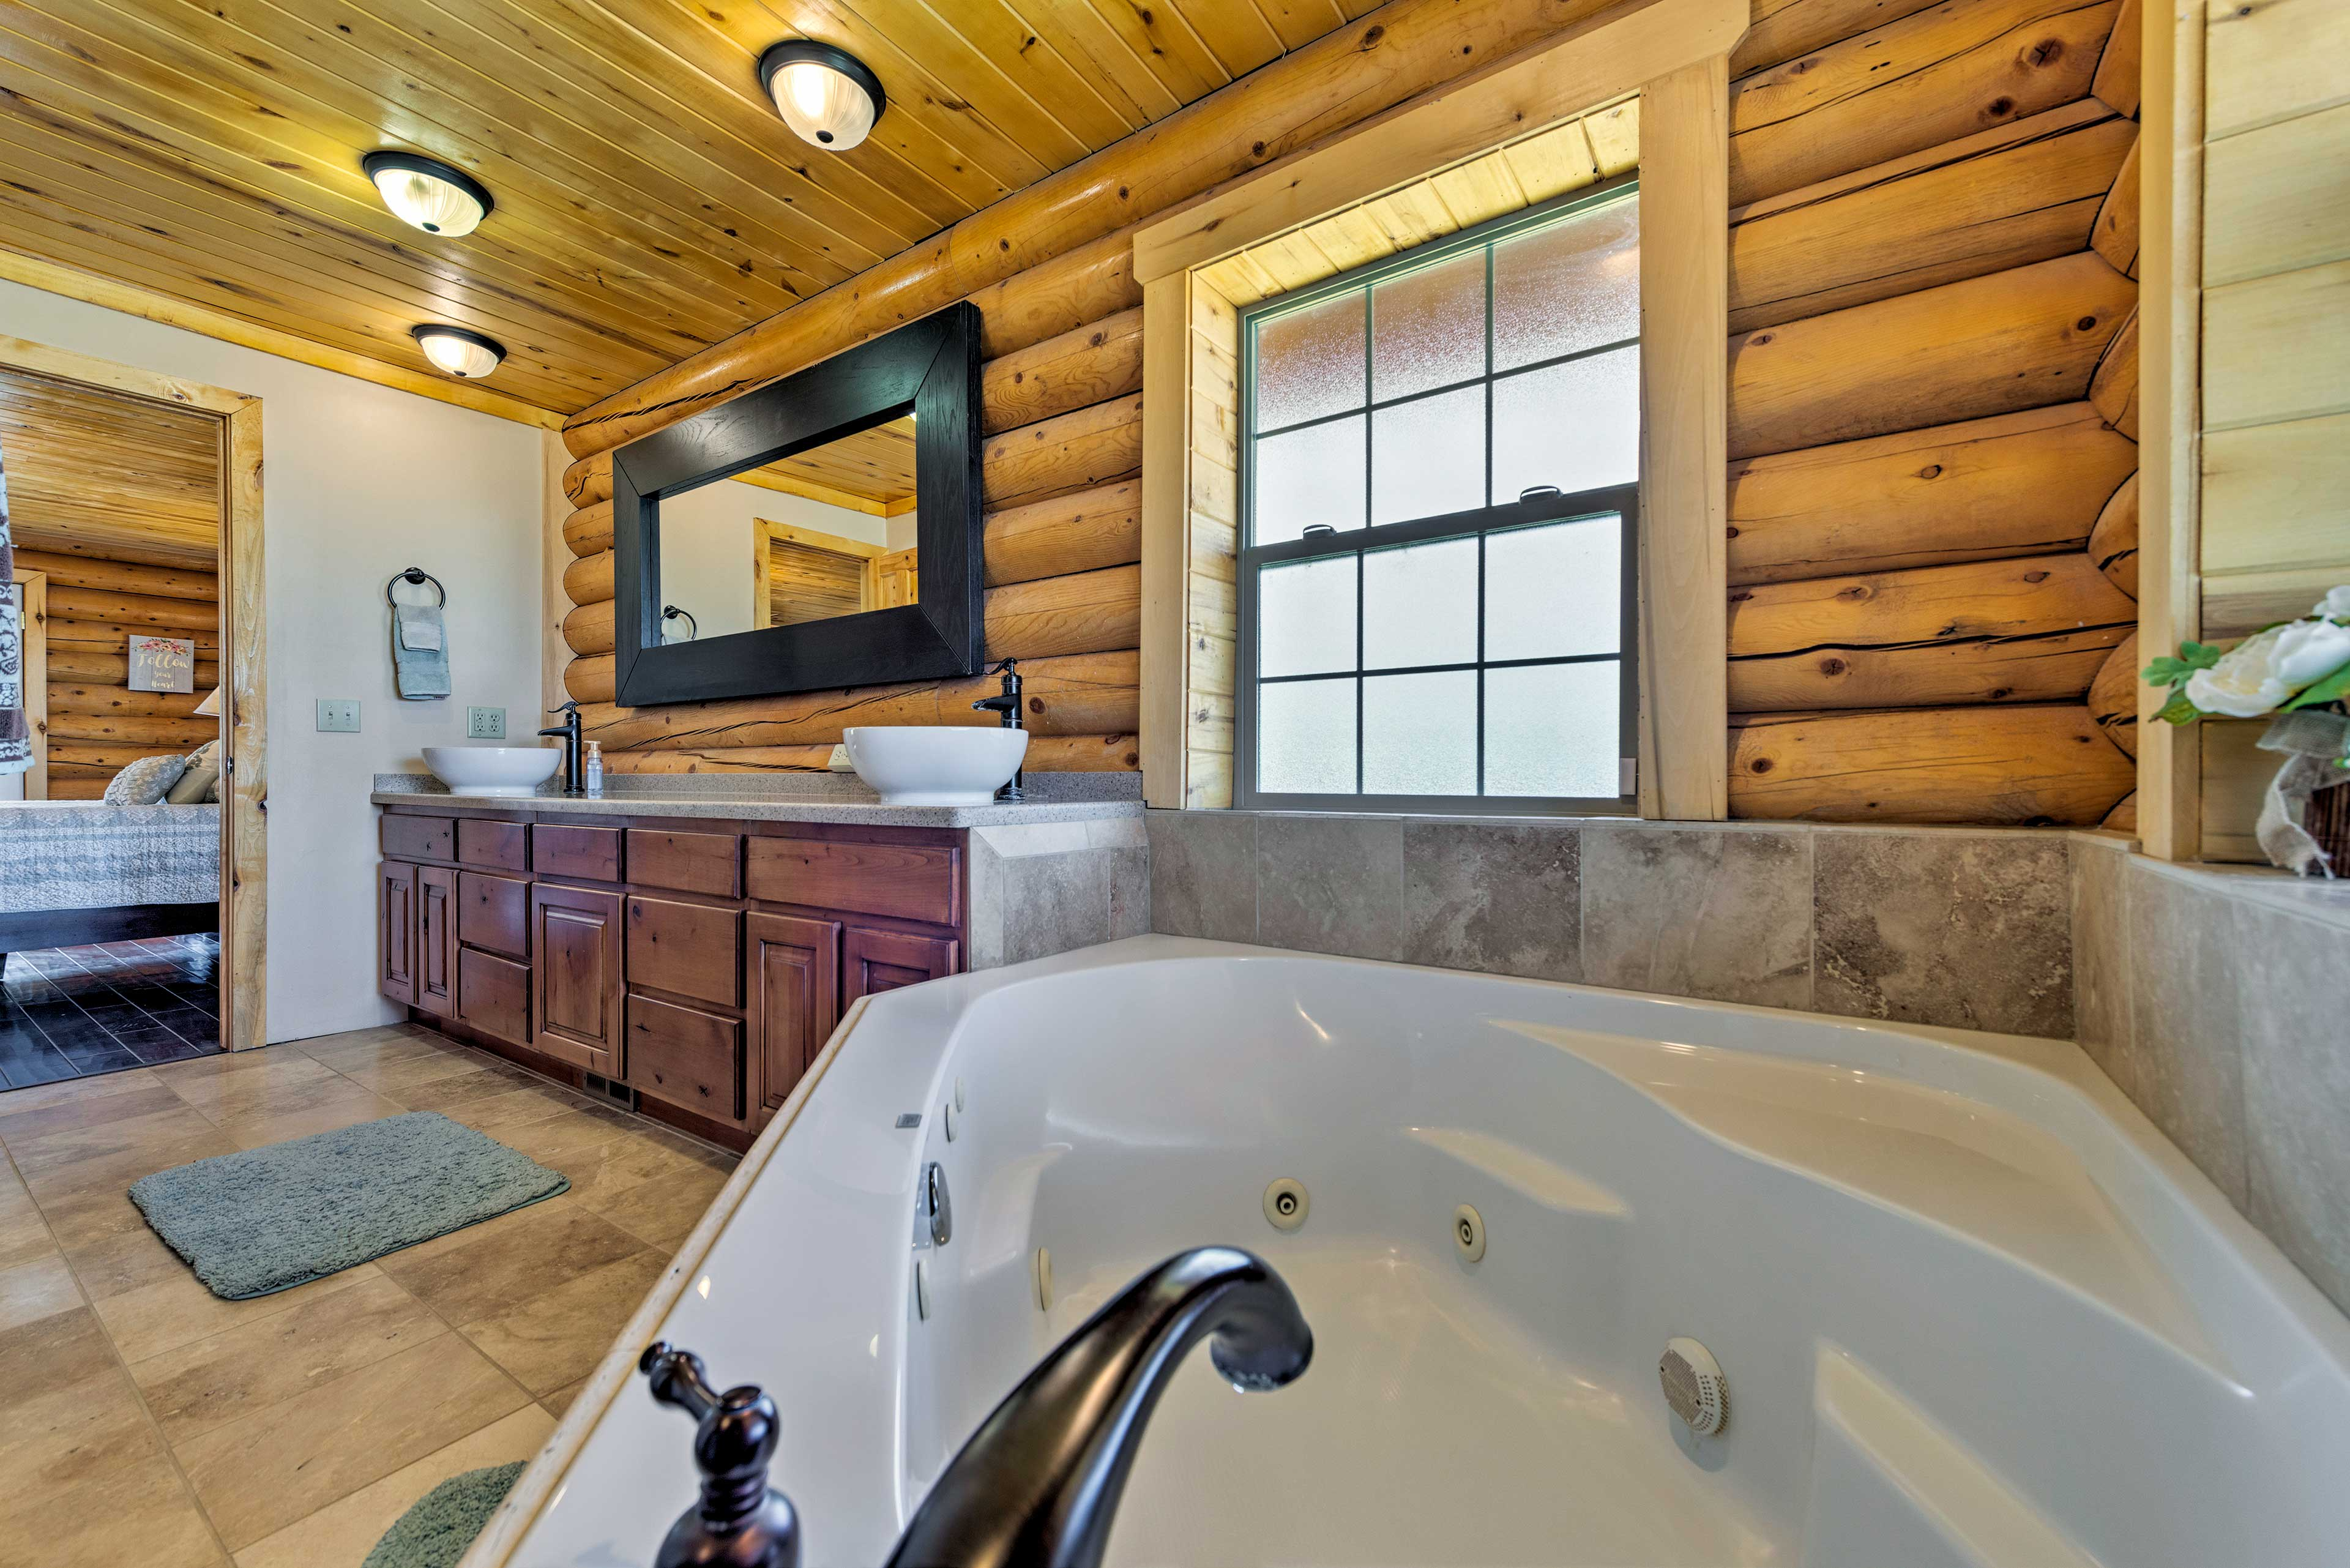 End the night with a jacuzzi bath.